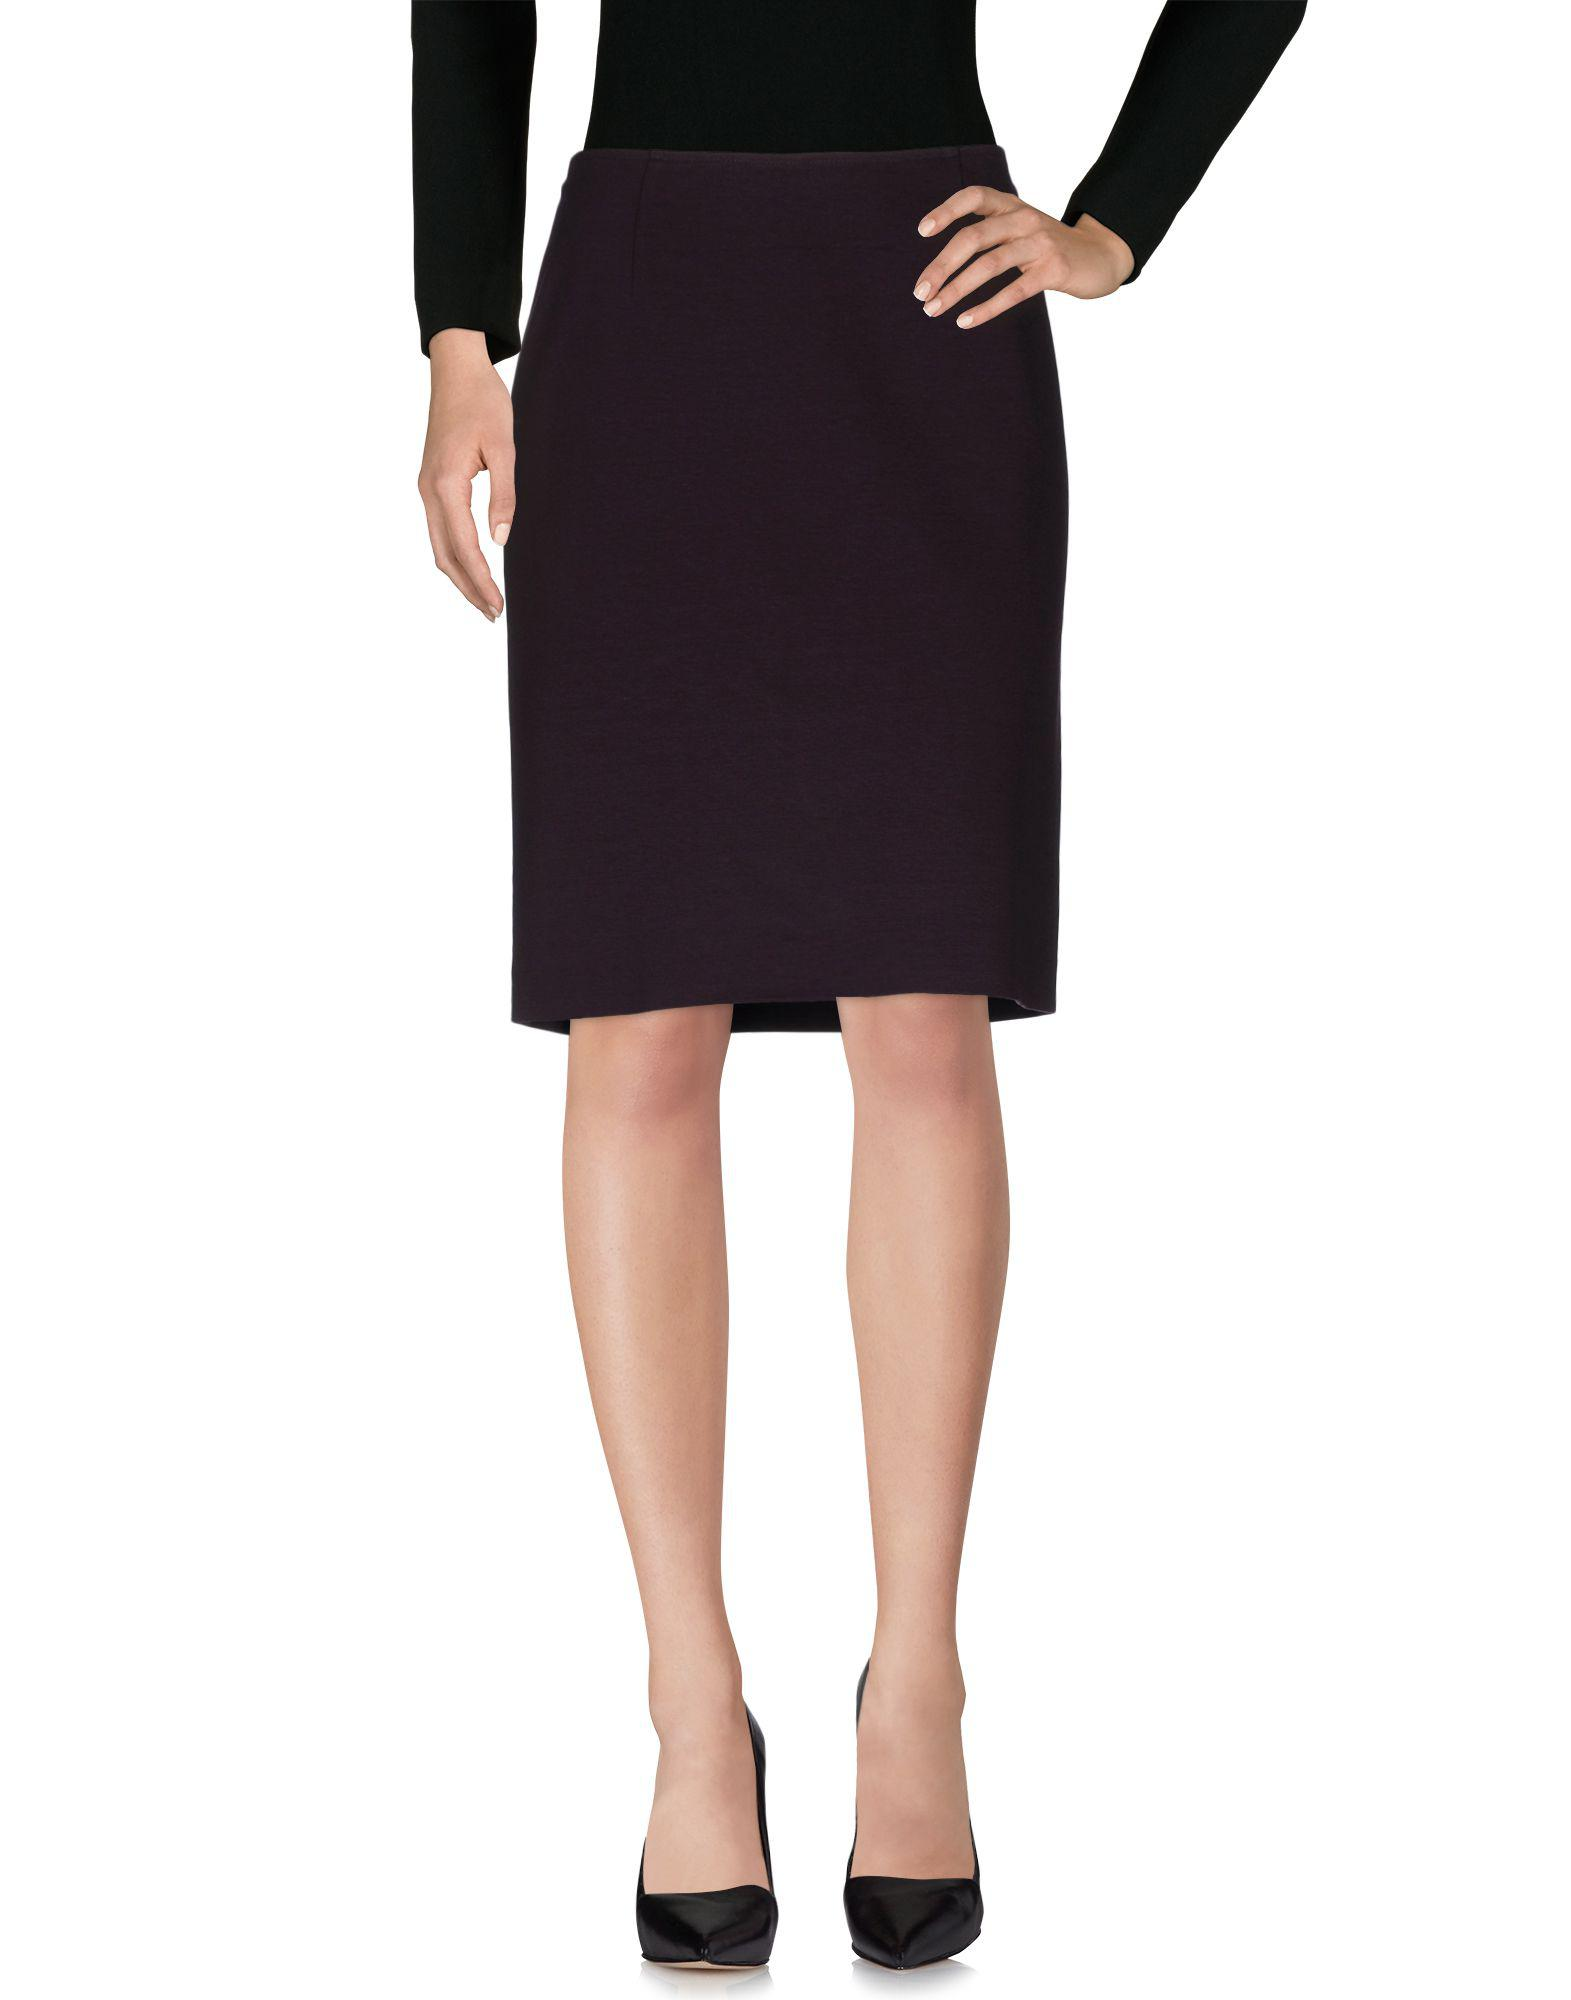 SKIRTS - Knee length skirts Alberta Ferretti Outlet Recommend Discount Best Seller ZLPiXf